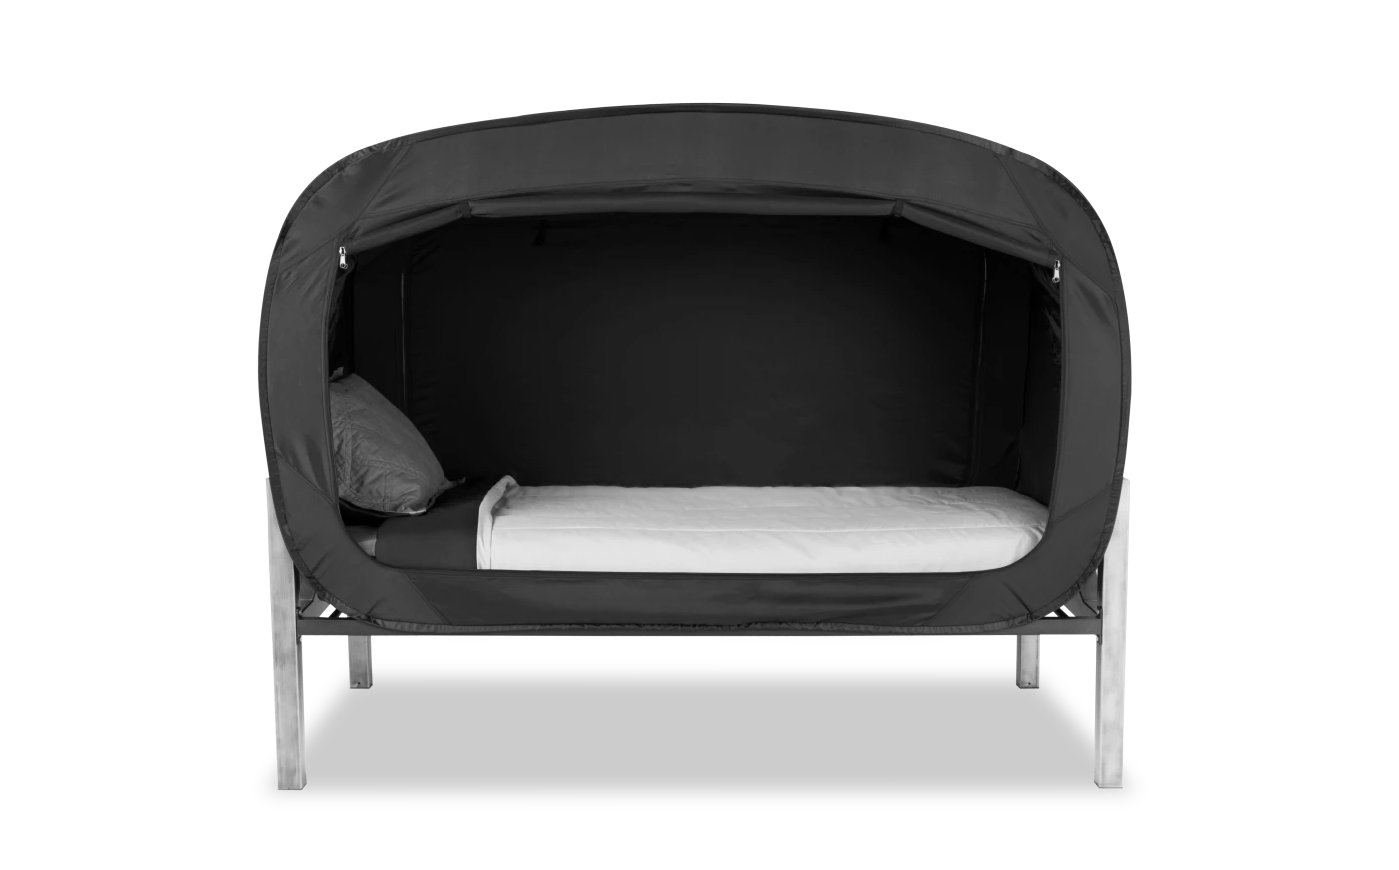 the bed tent in black wrapping around the bed like a bubble